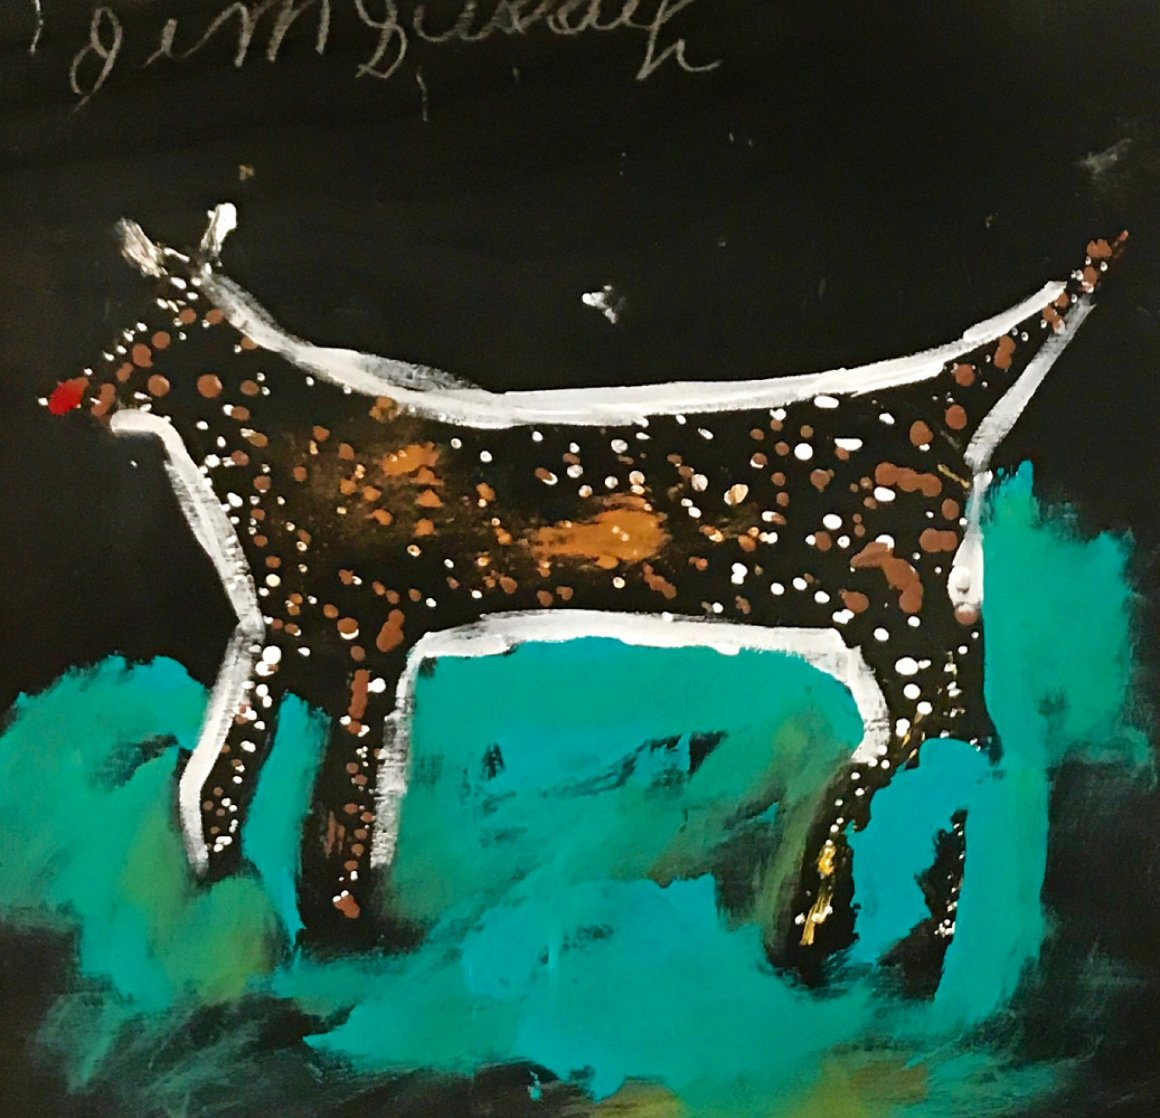 Dog 2002 31x31 Original Painting by Jimmy Lee Sudduth